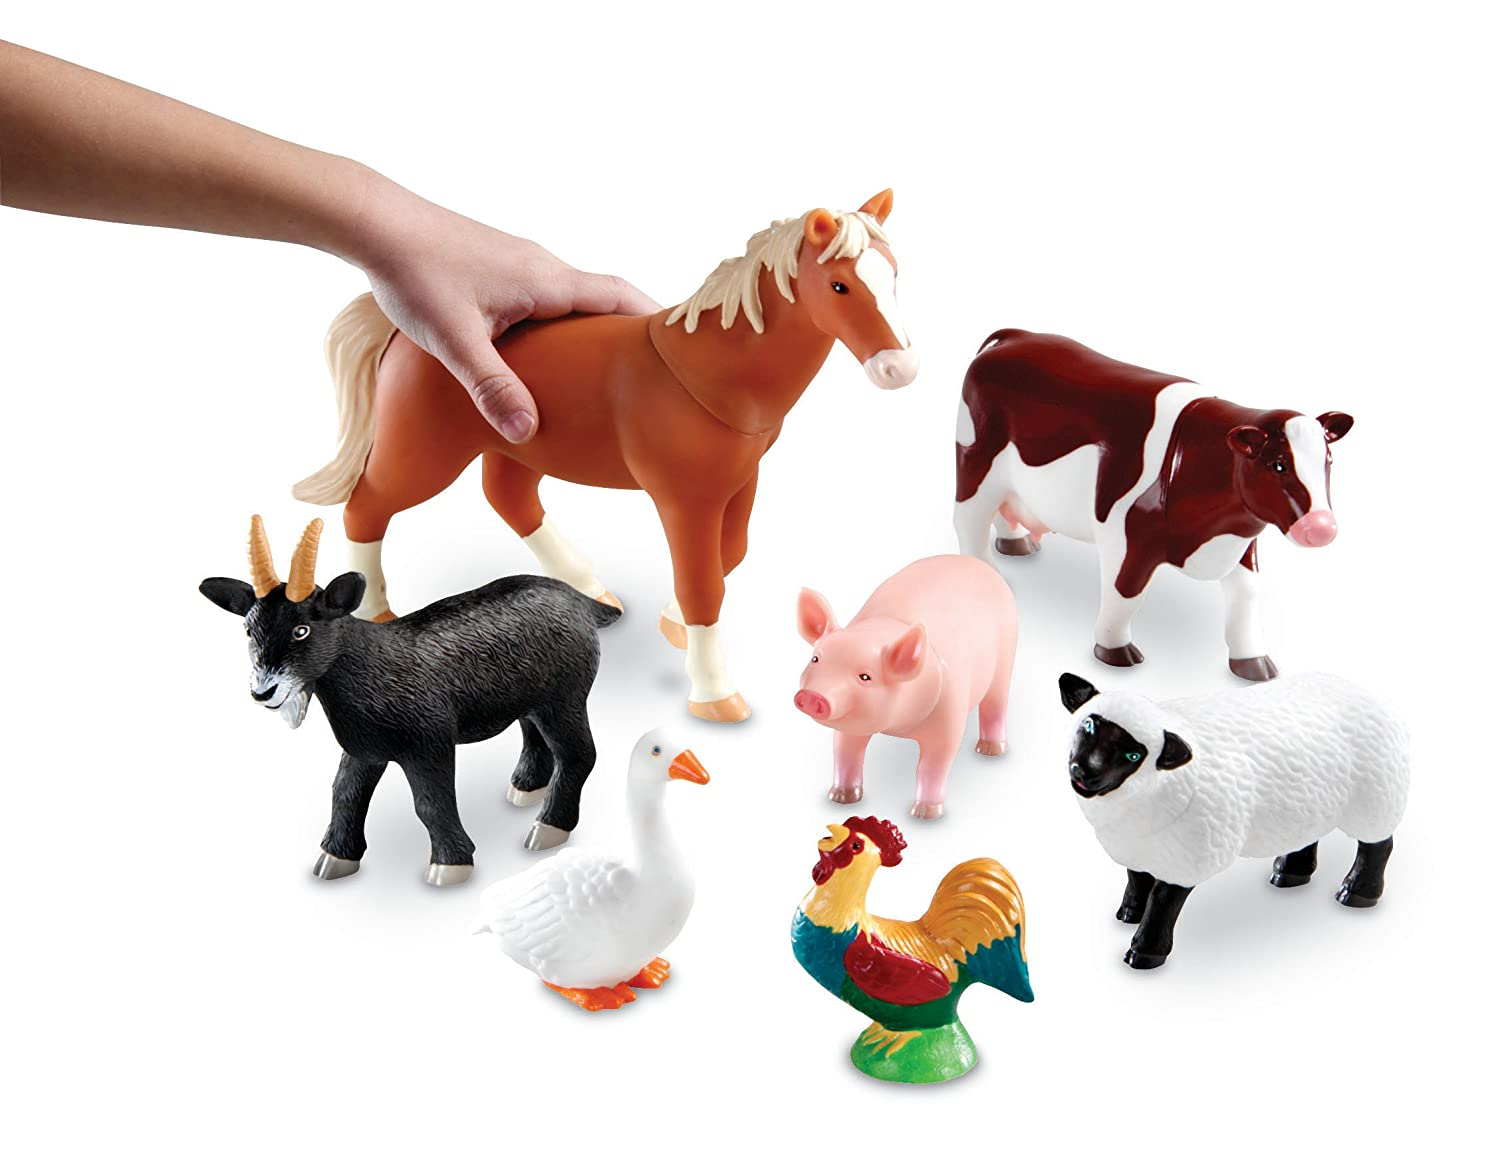 Jumbo Farm Animals Image